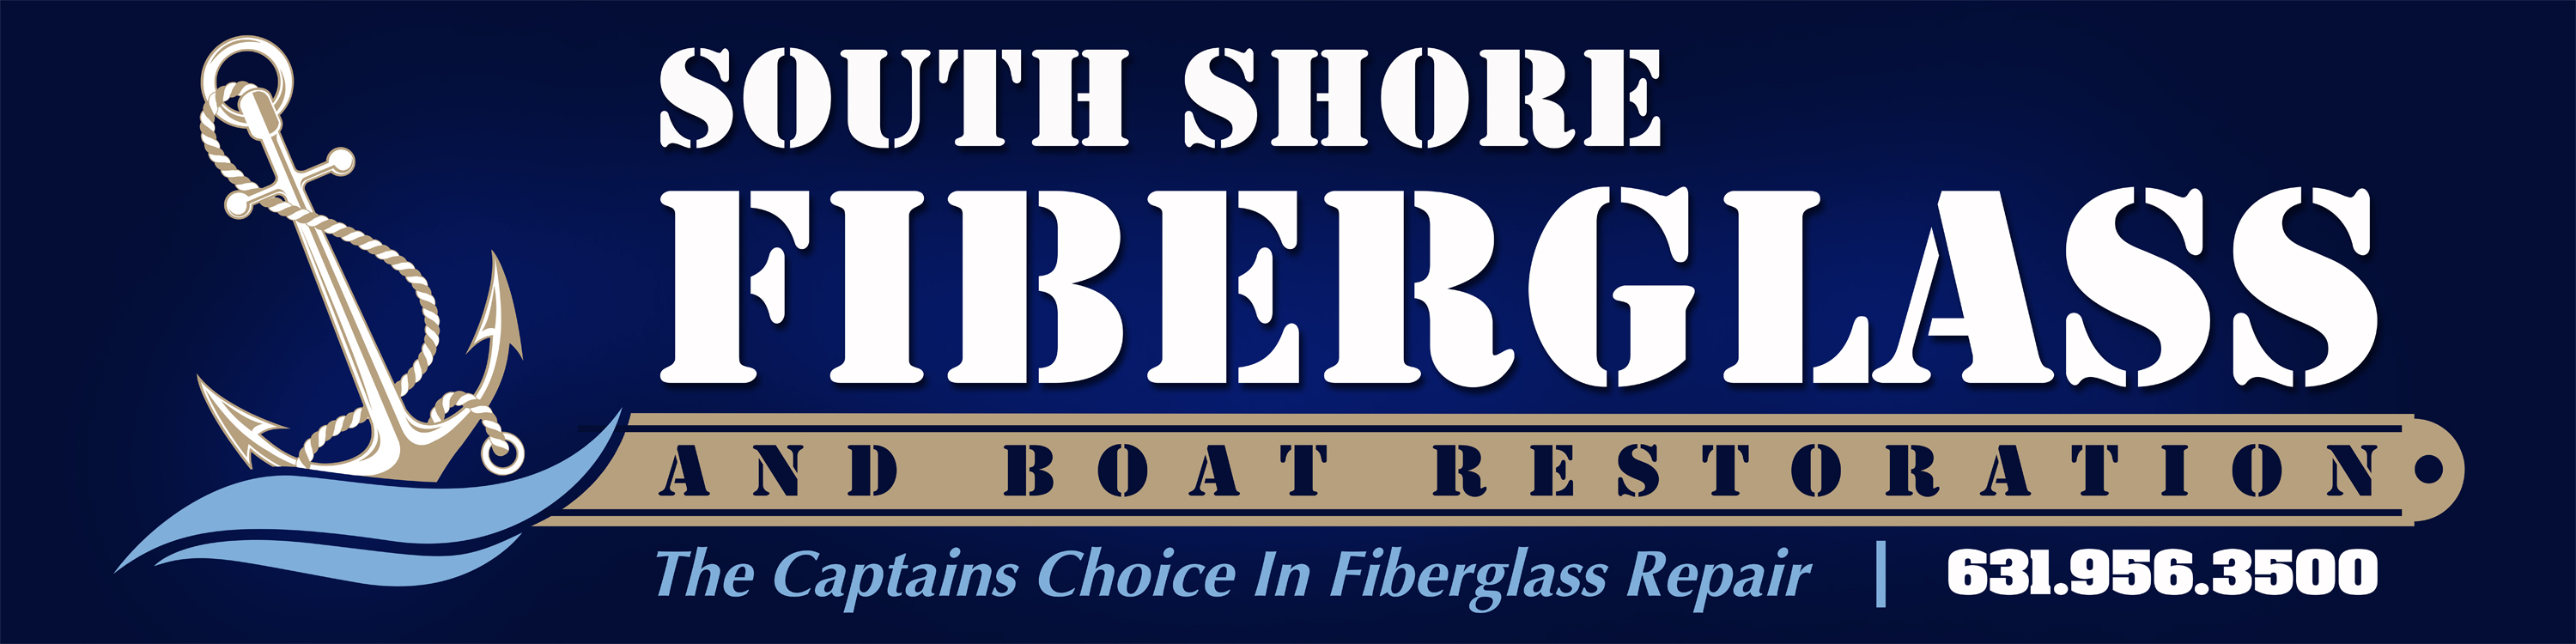 South Shore Fiberglass logo